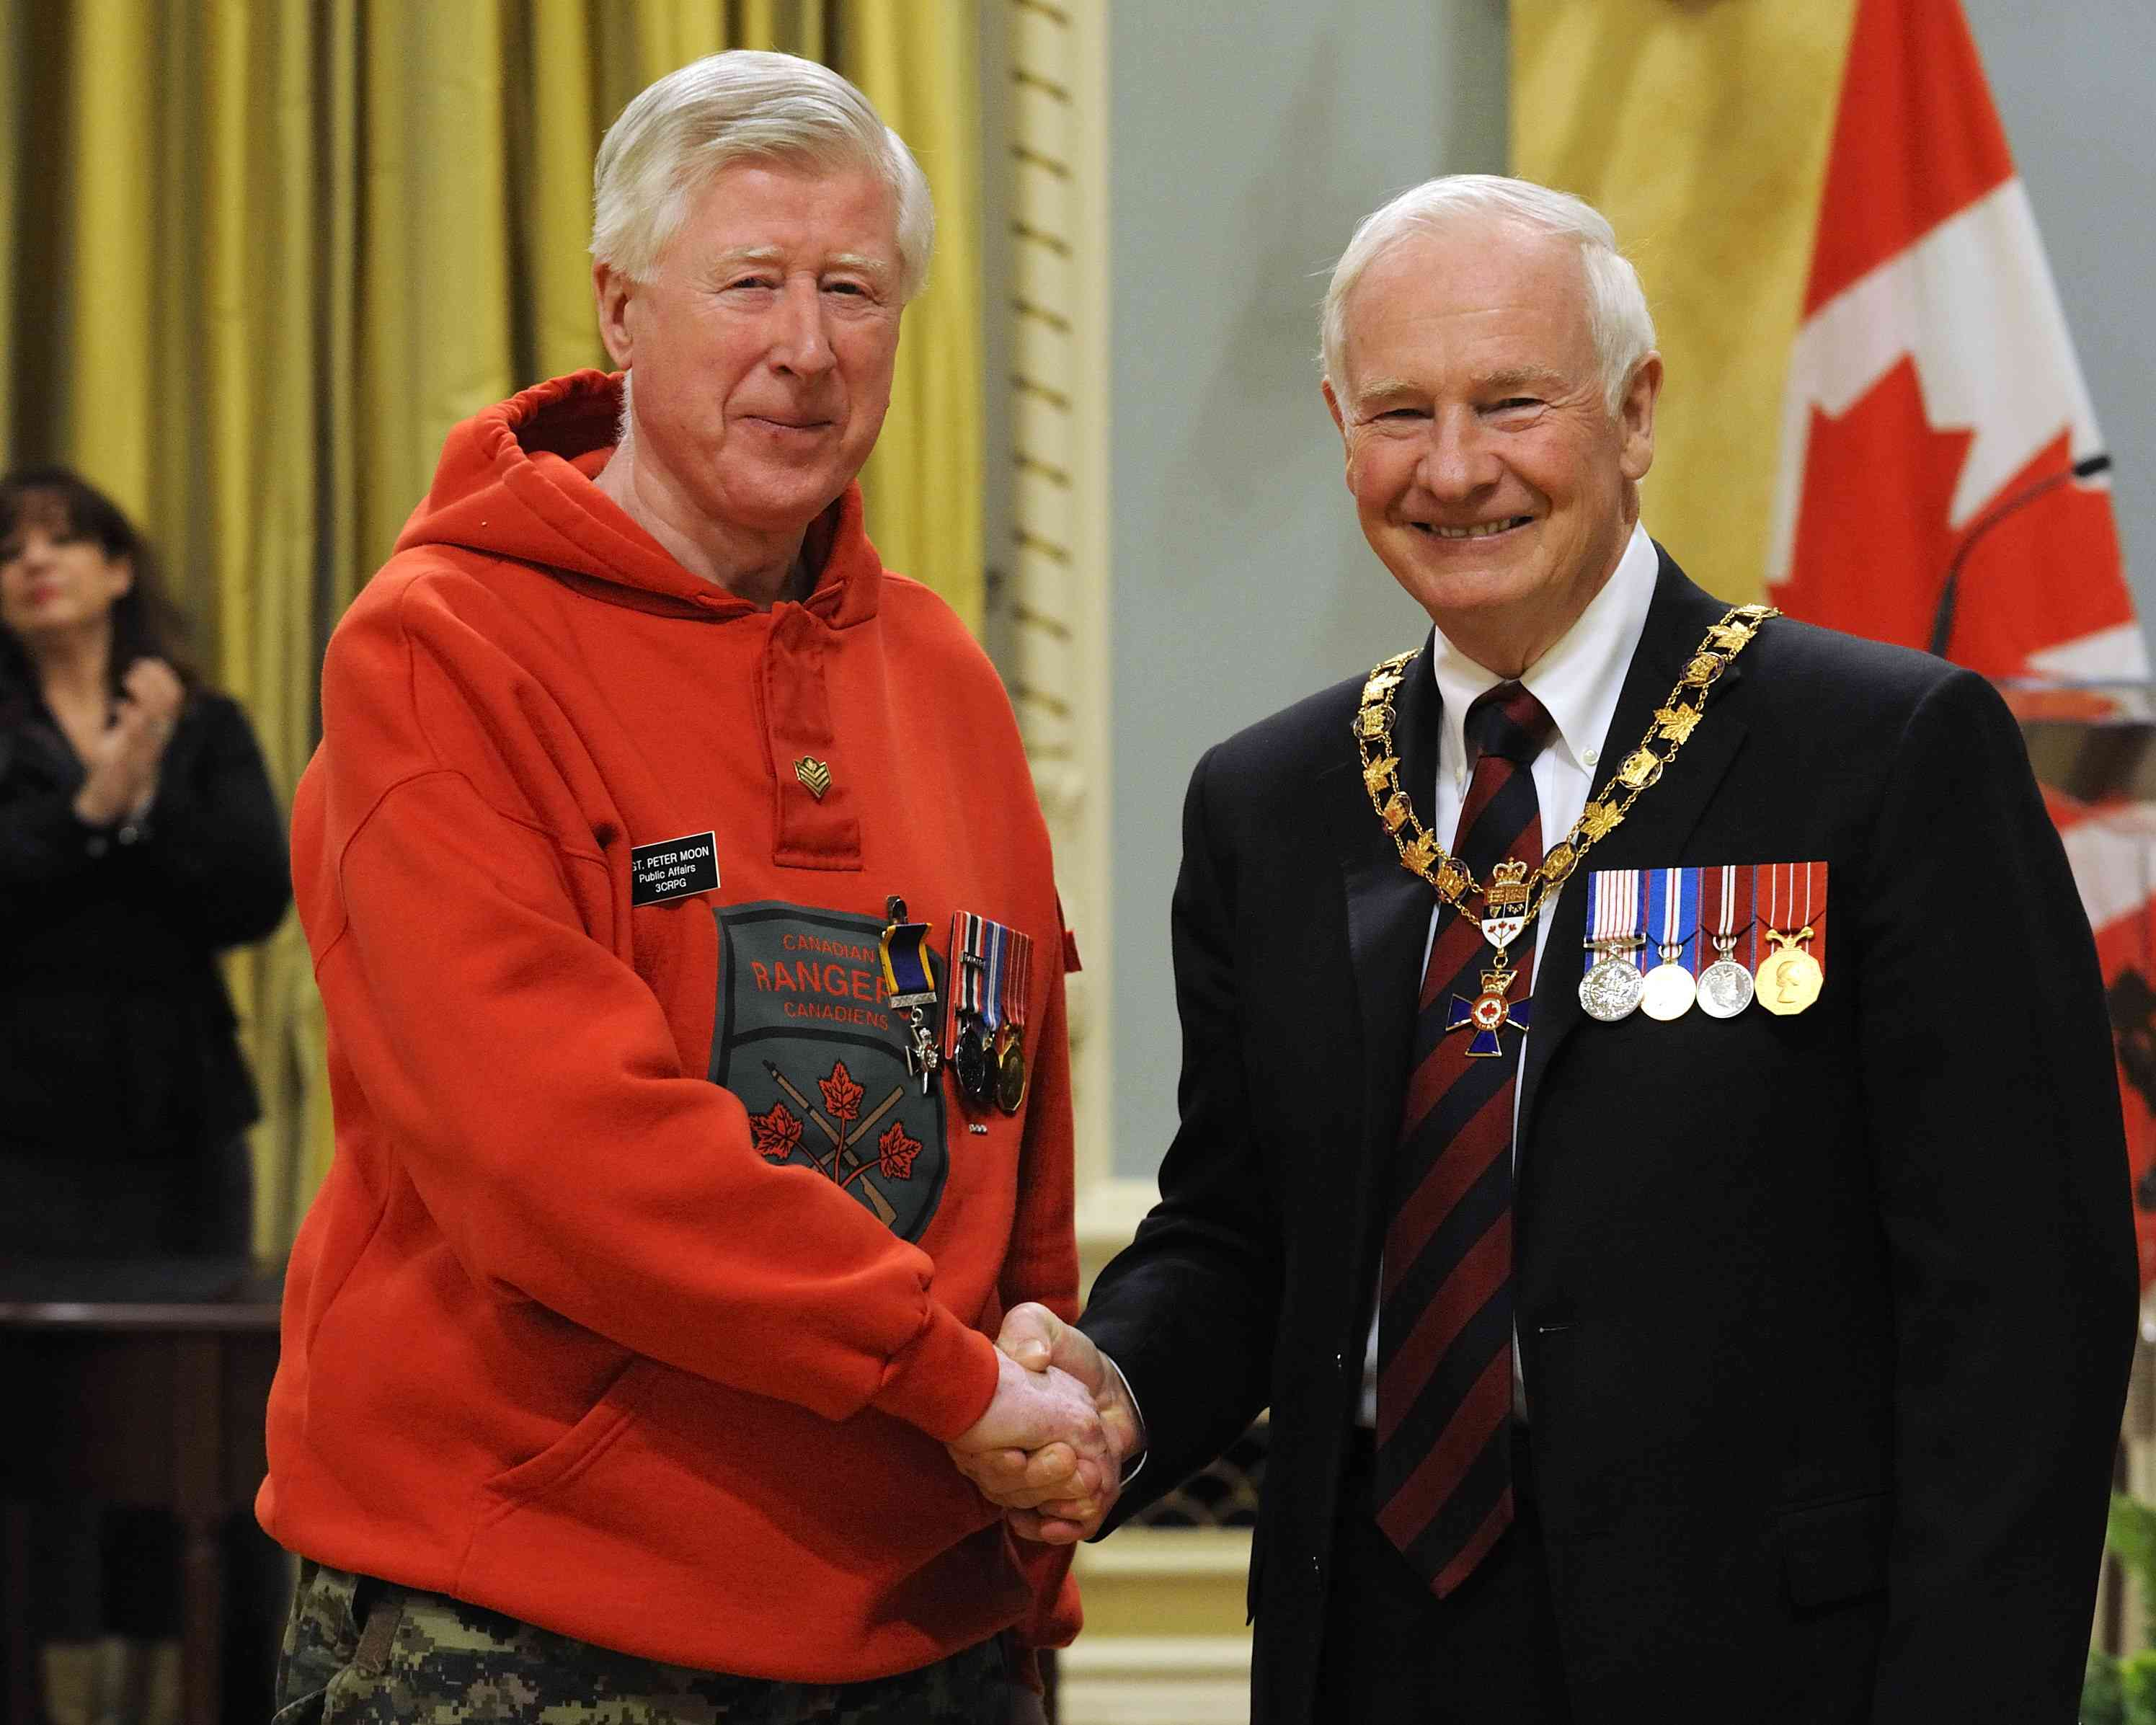 His Excellency presented the Order of Military Merit at the Member level (M.M.M.) to Sergeant Peter Moon, M.M.M., C.D., 3rd Canadian Ranger Patrol Group, Borden, Ont.